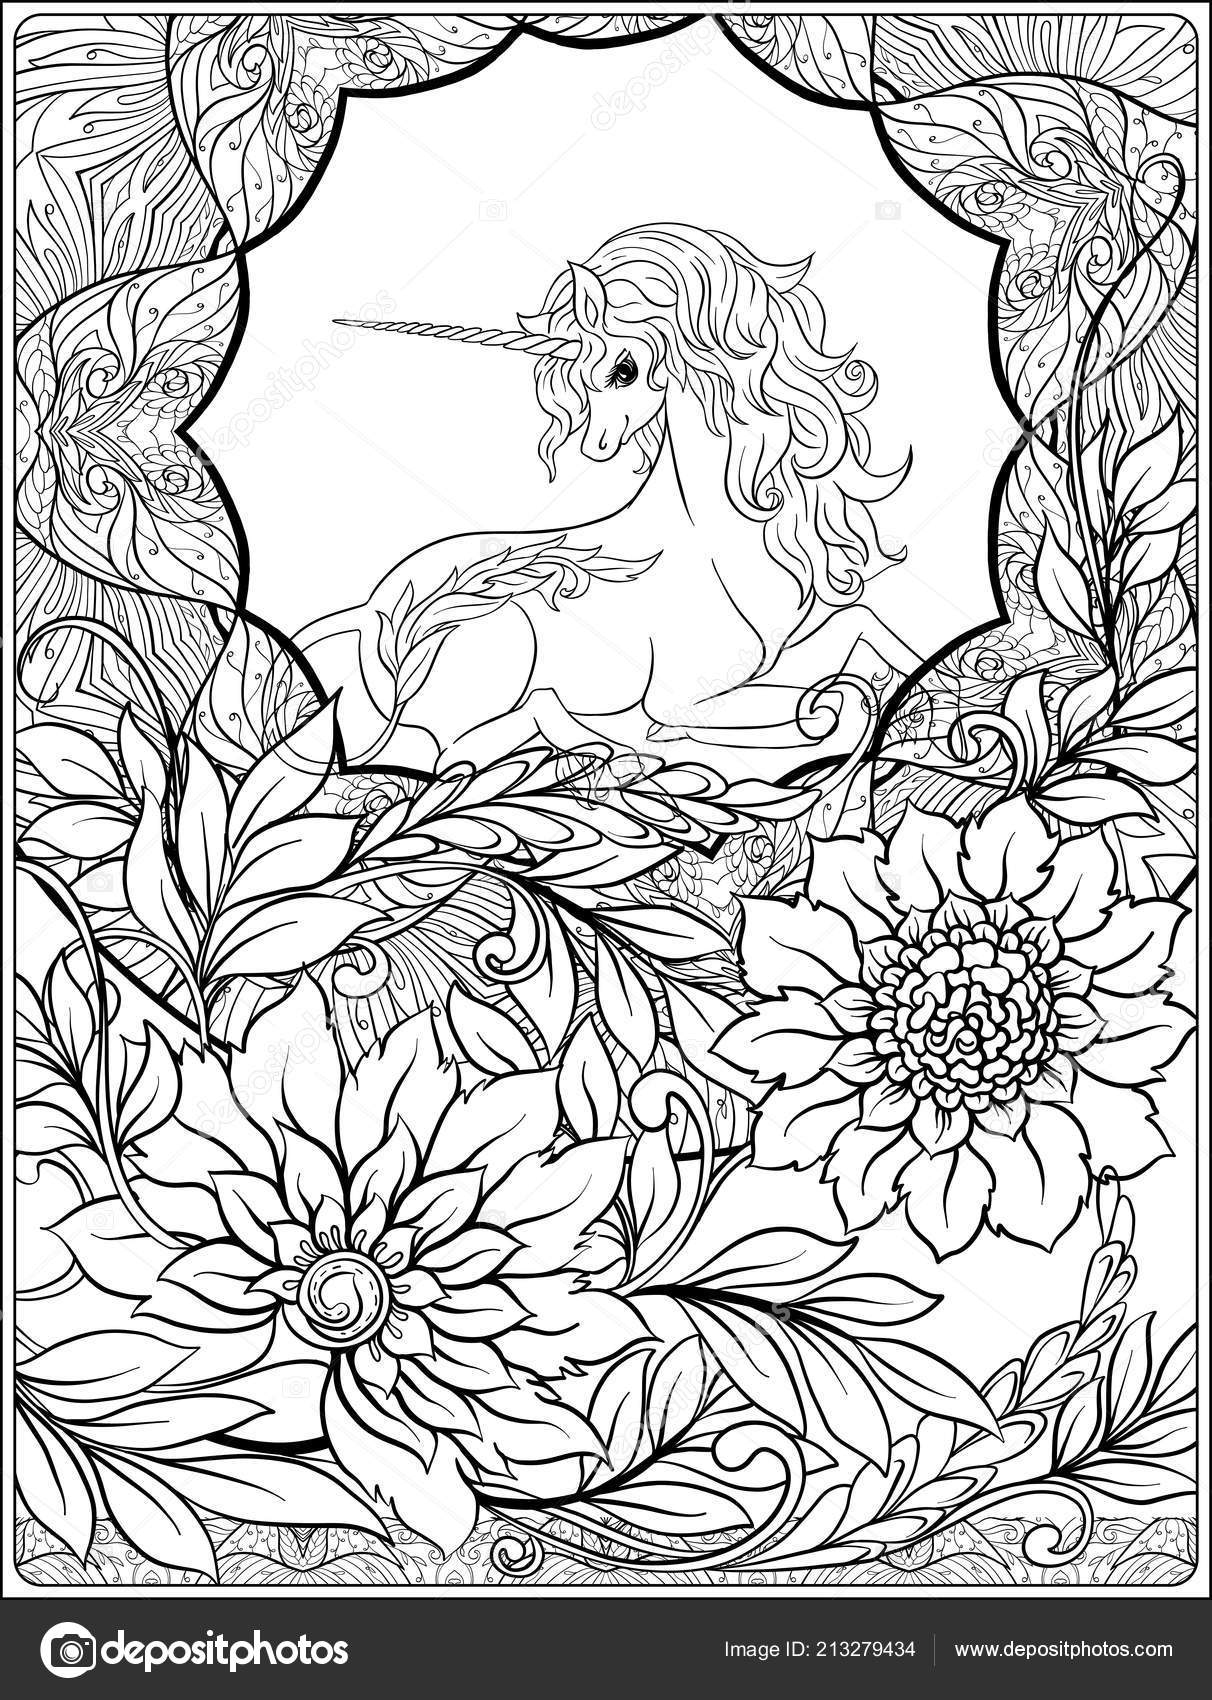 in art nouveau style vintage old retro style outline hand drawing good for coloring page for the adult coloring book vector by elenabesedina